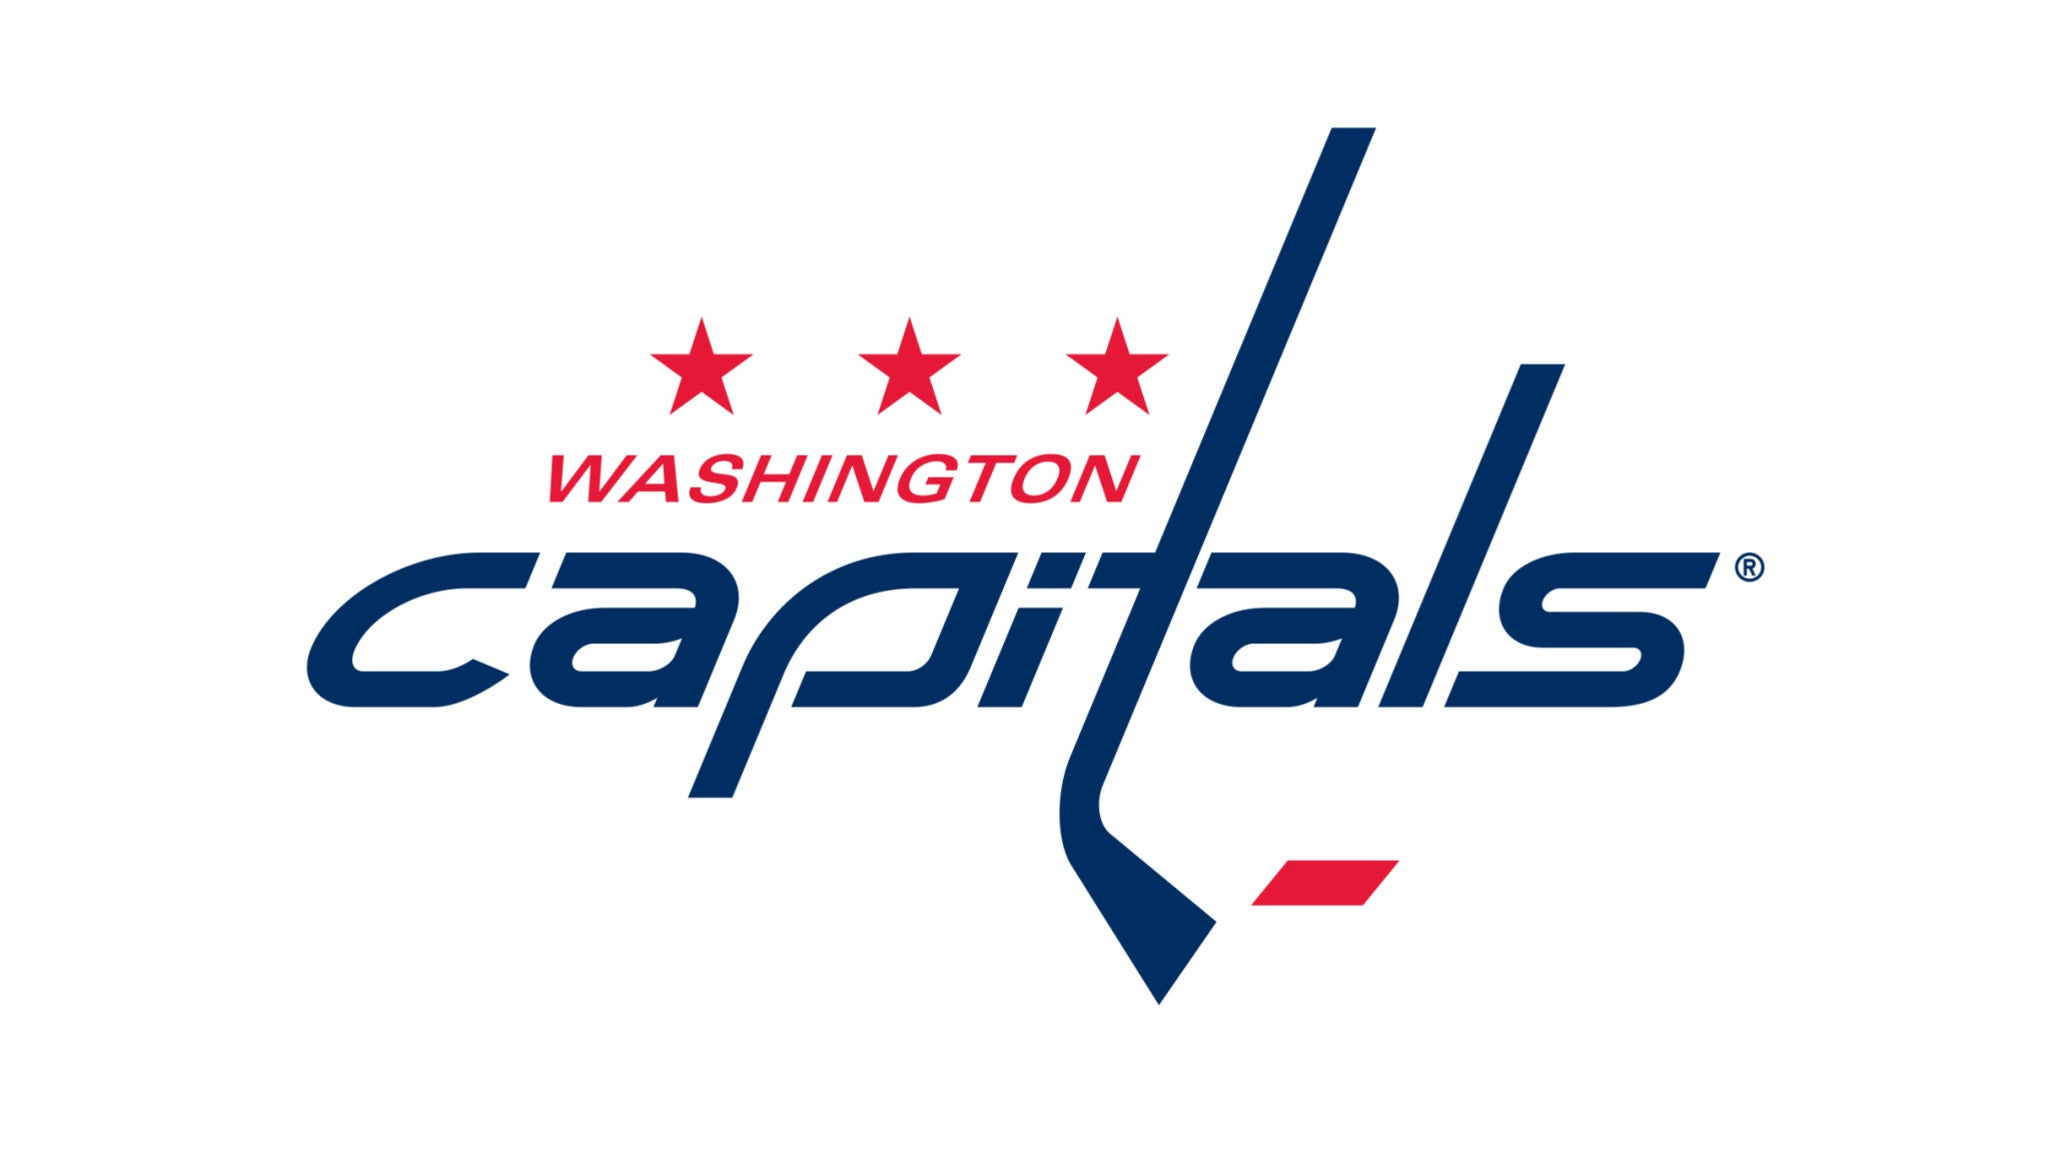 Washington Capitals vs. Detroit Red Wings - Washington, DC 20004